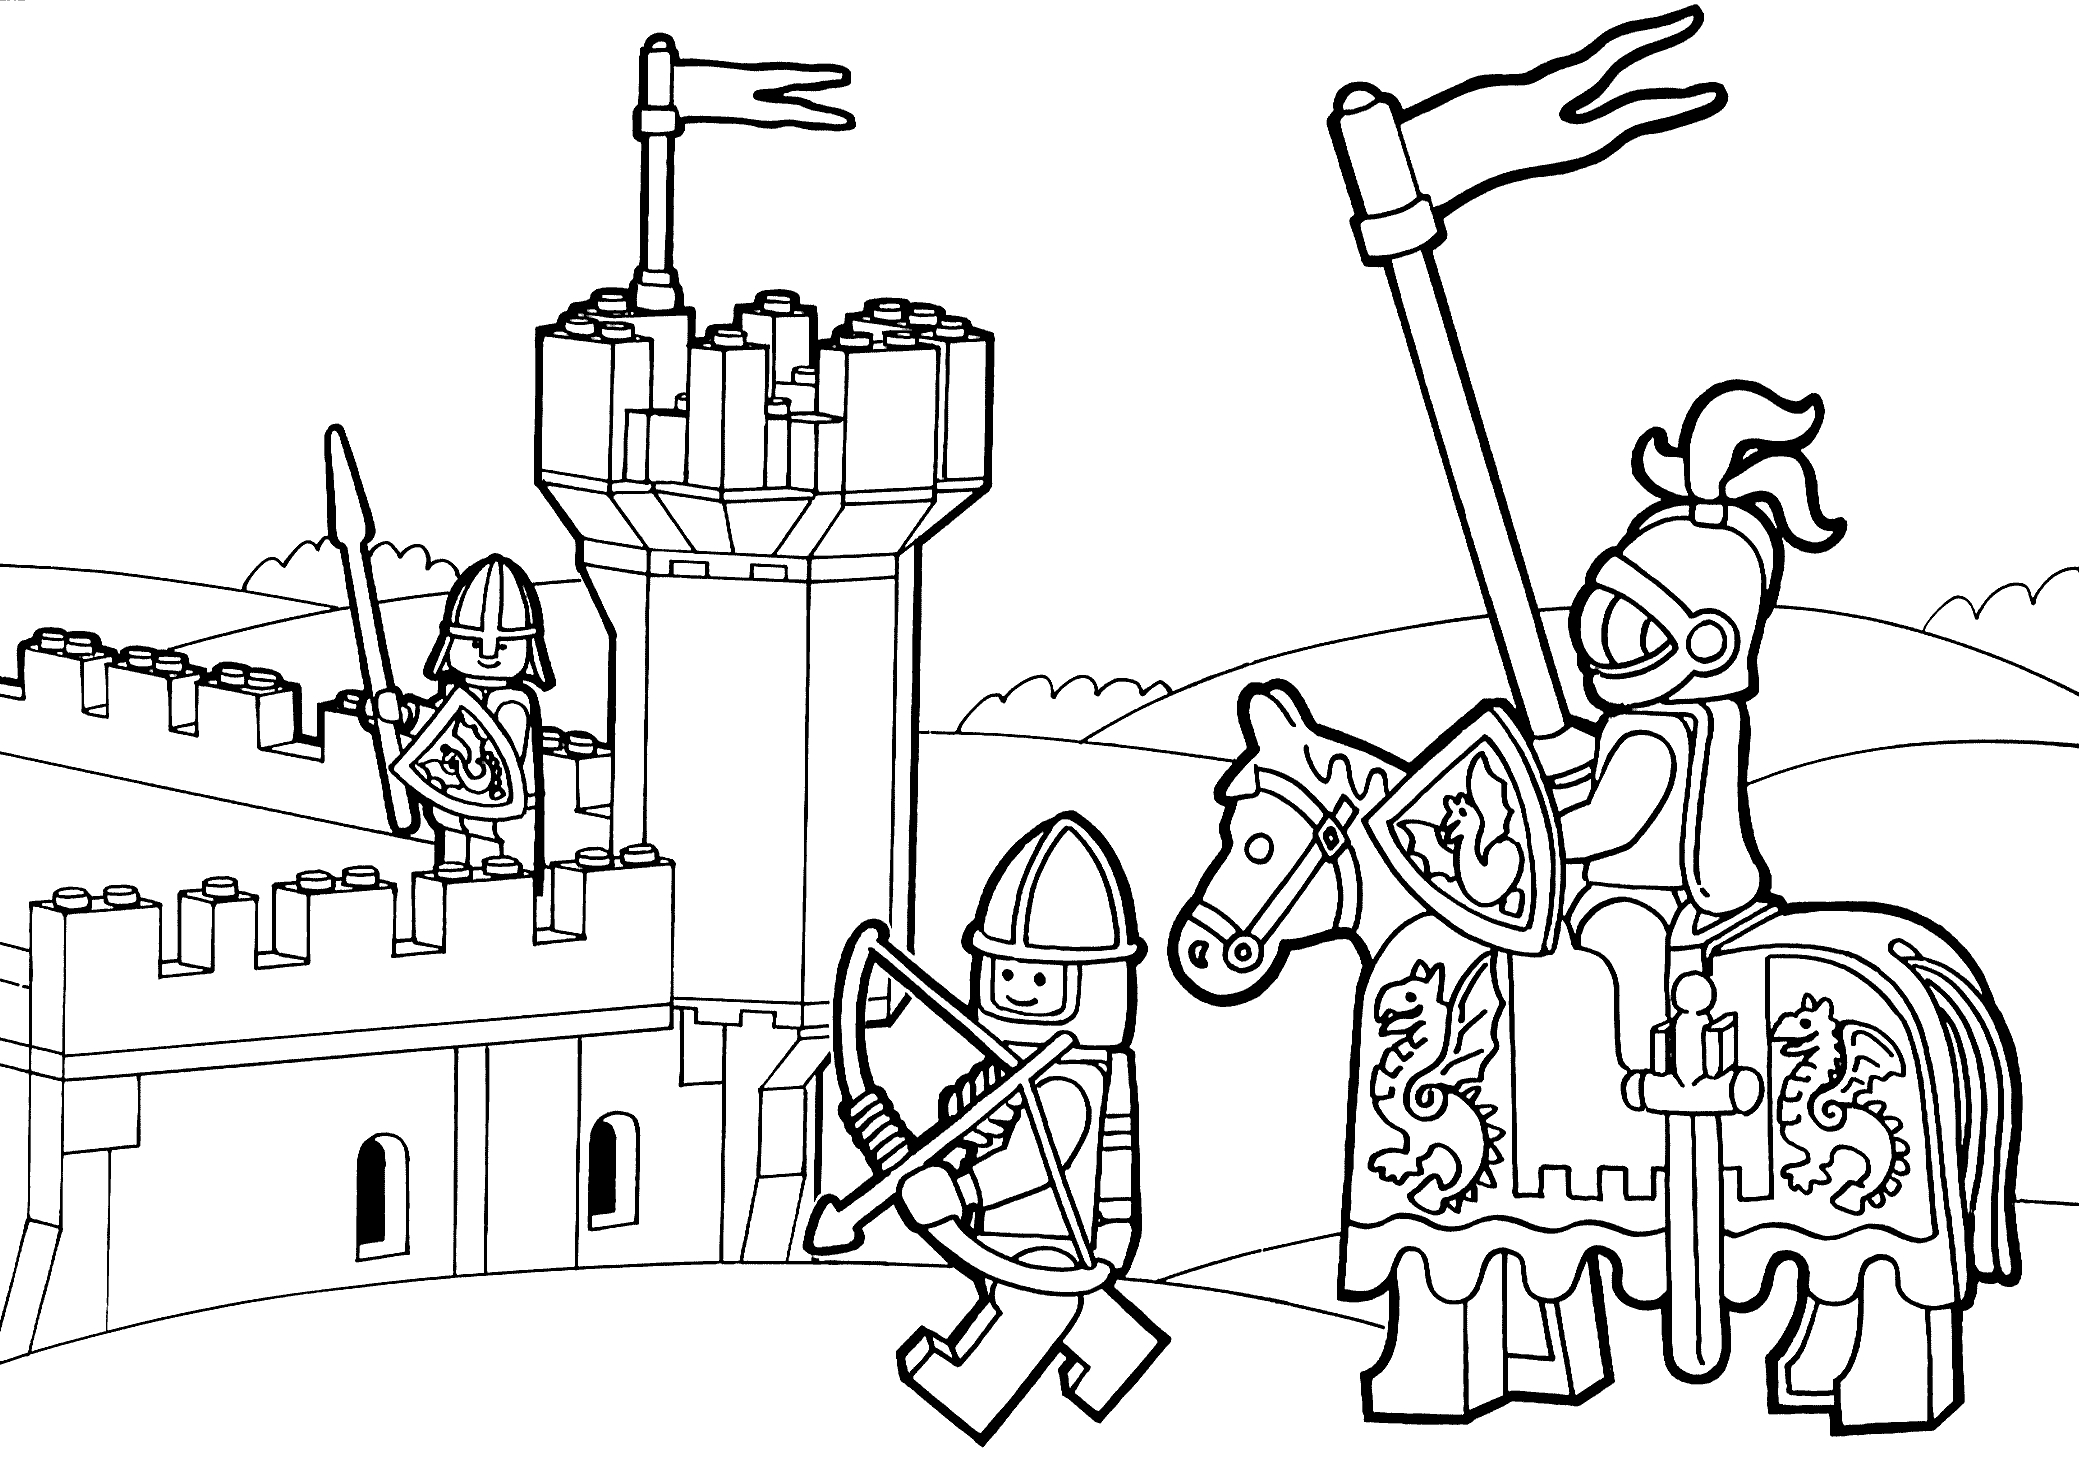 2079x1483 Awesome Lego City Coloring Pages Coloringsuite Free Coloring